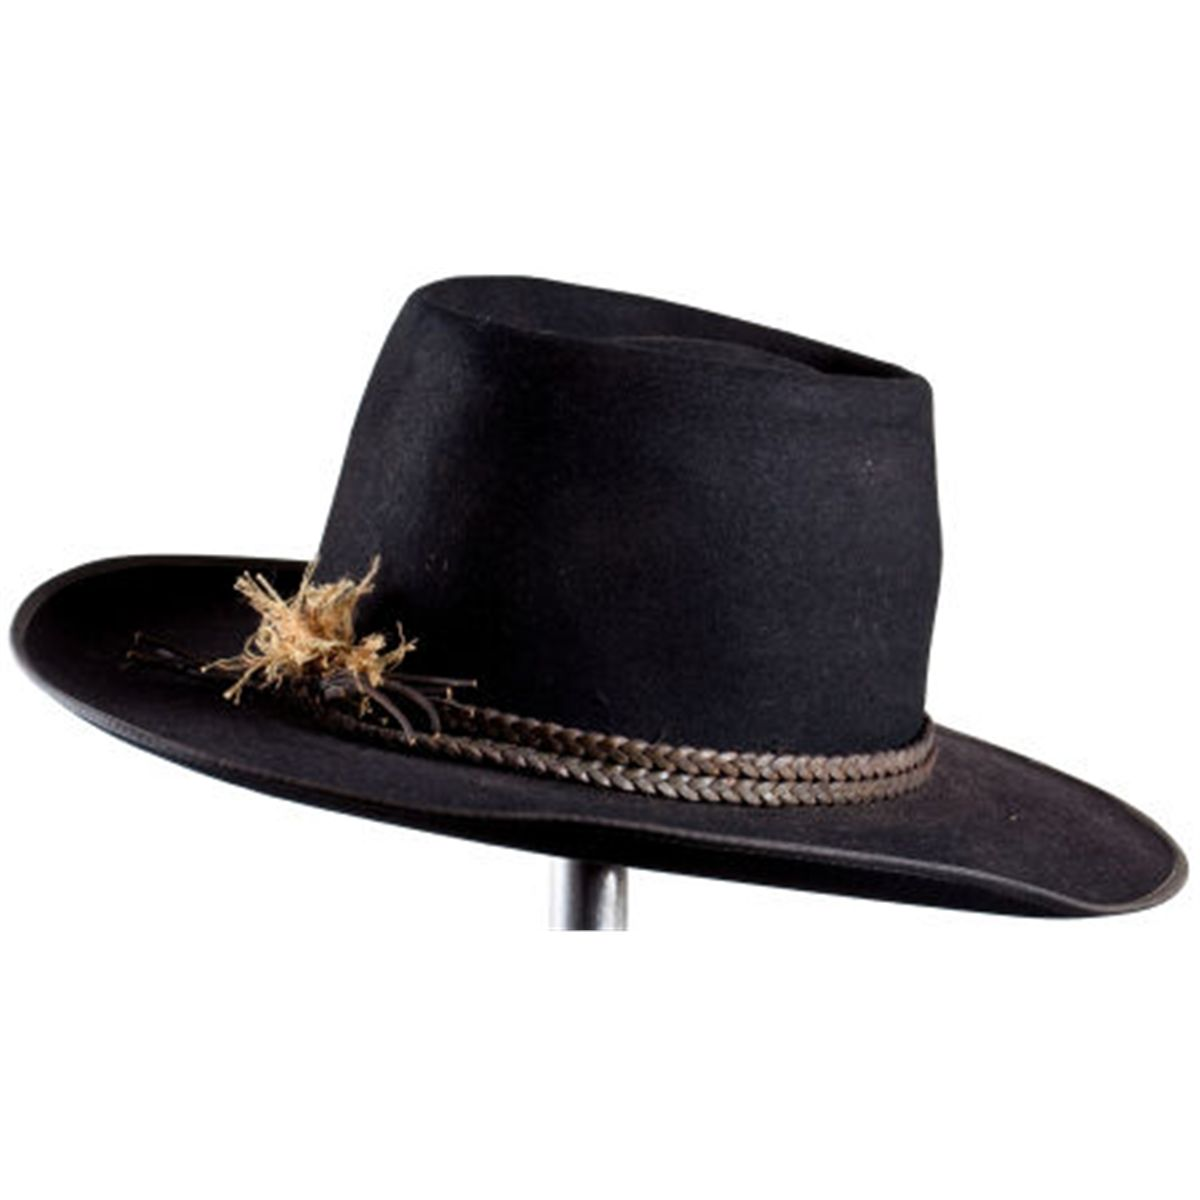 Cowboy Hat Png Available In Different Size